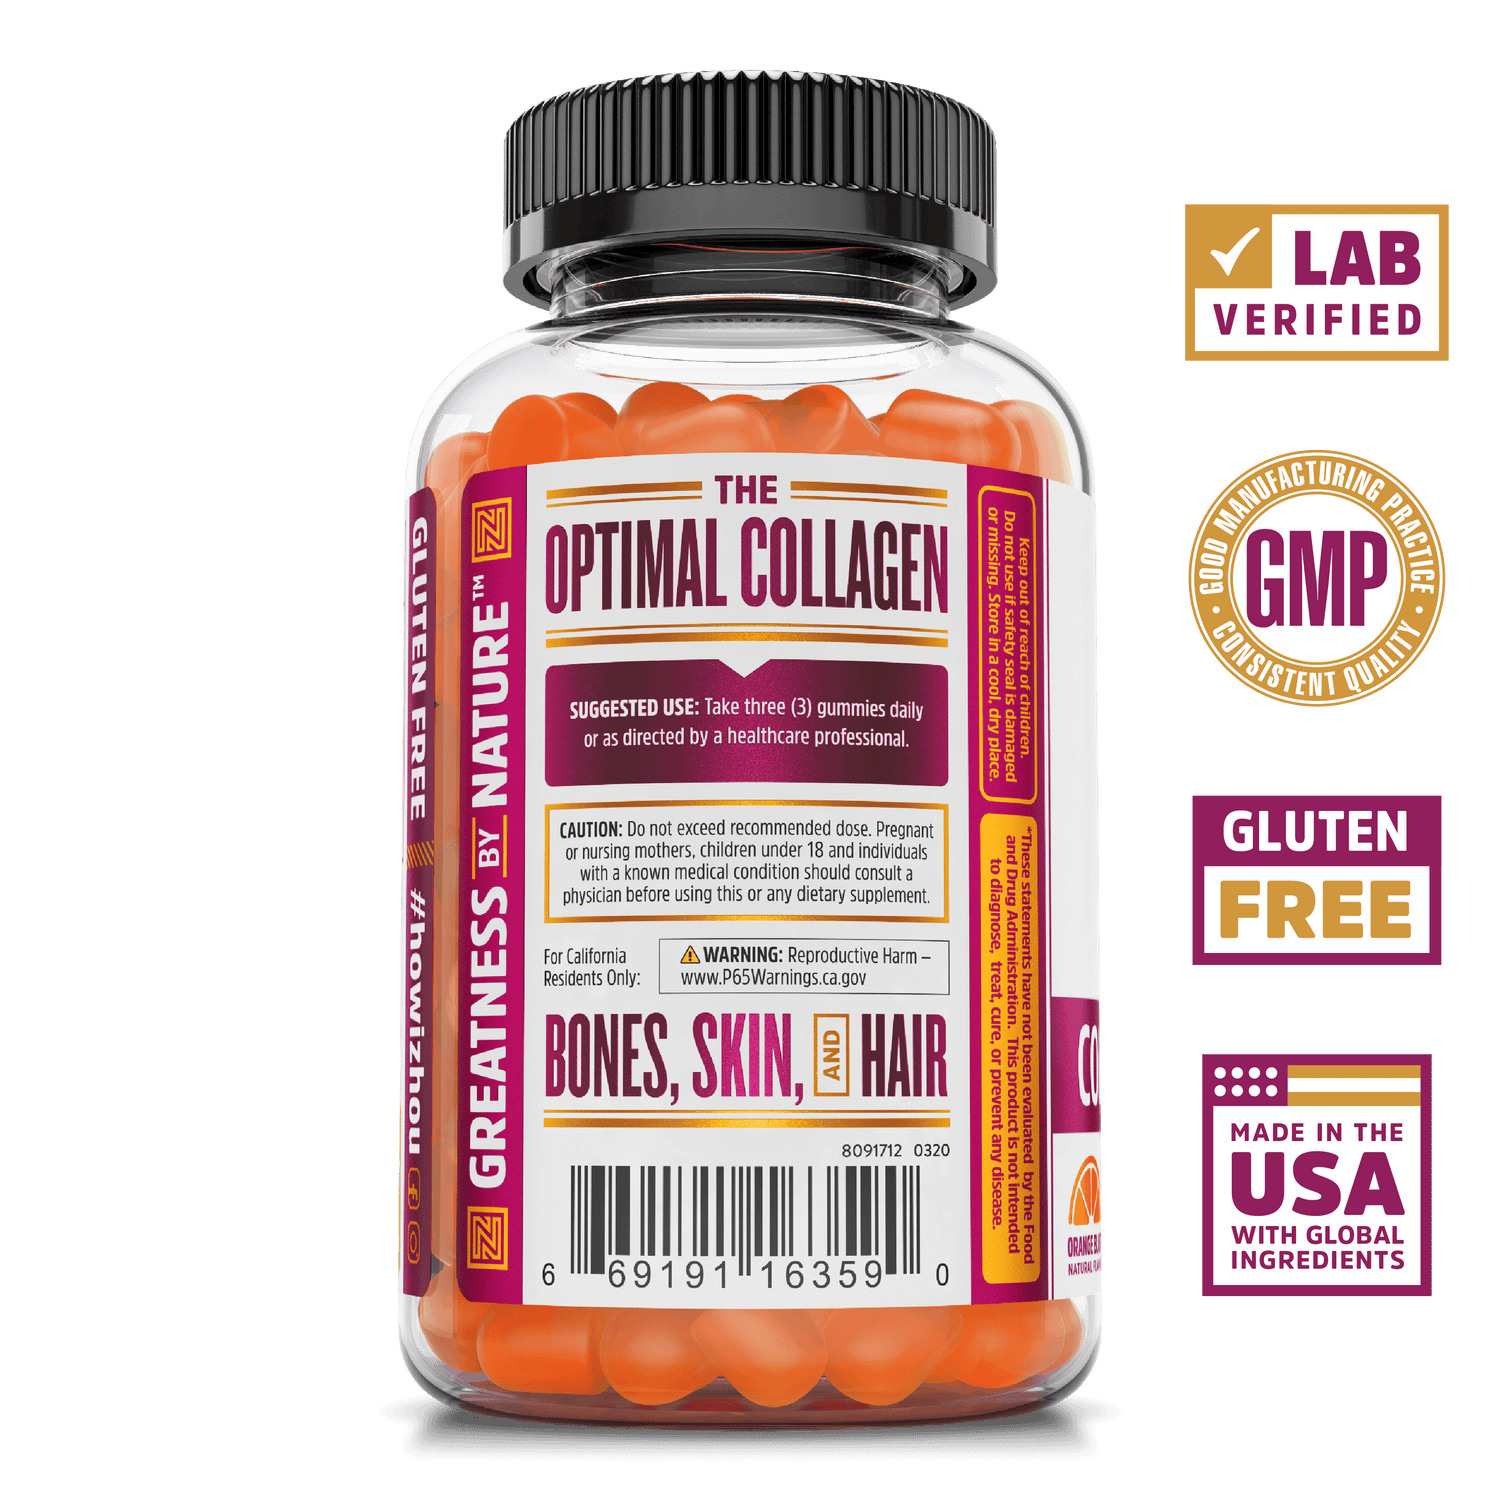 Collagen Peptides gummy supplement from Zhou Nutrition.  Lab verified, good manufacturing practices, gluten free, made in the USA with global ingredients